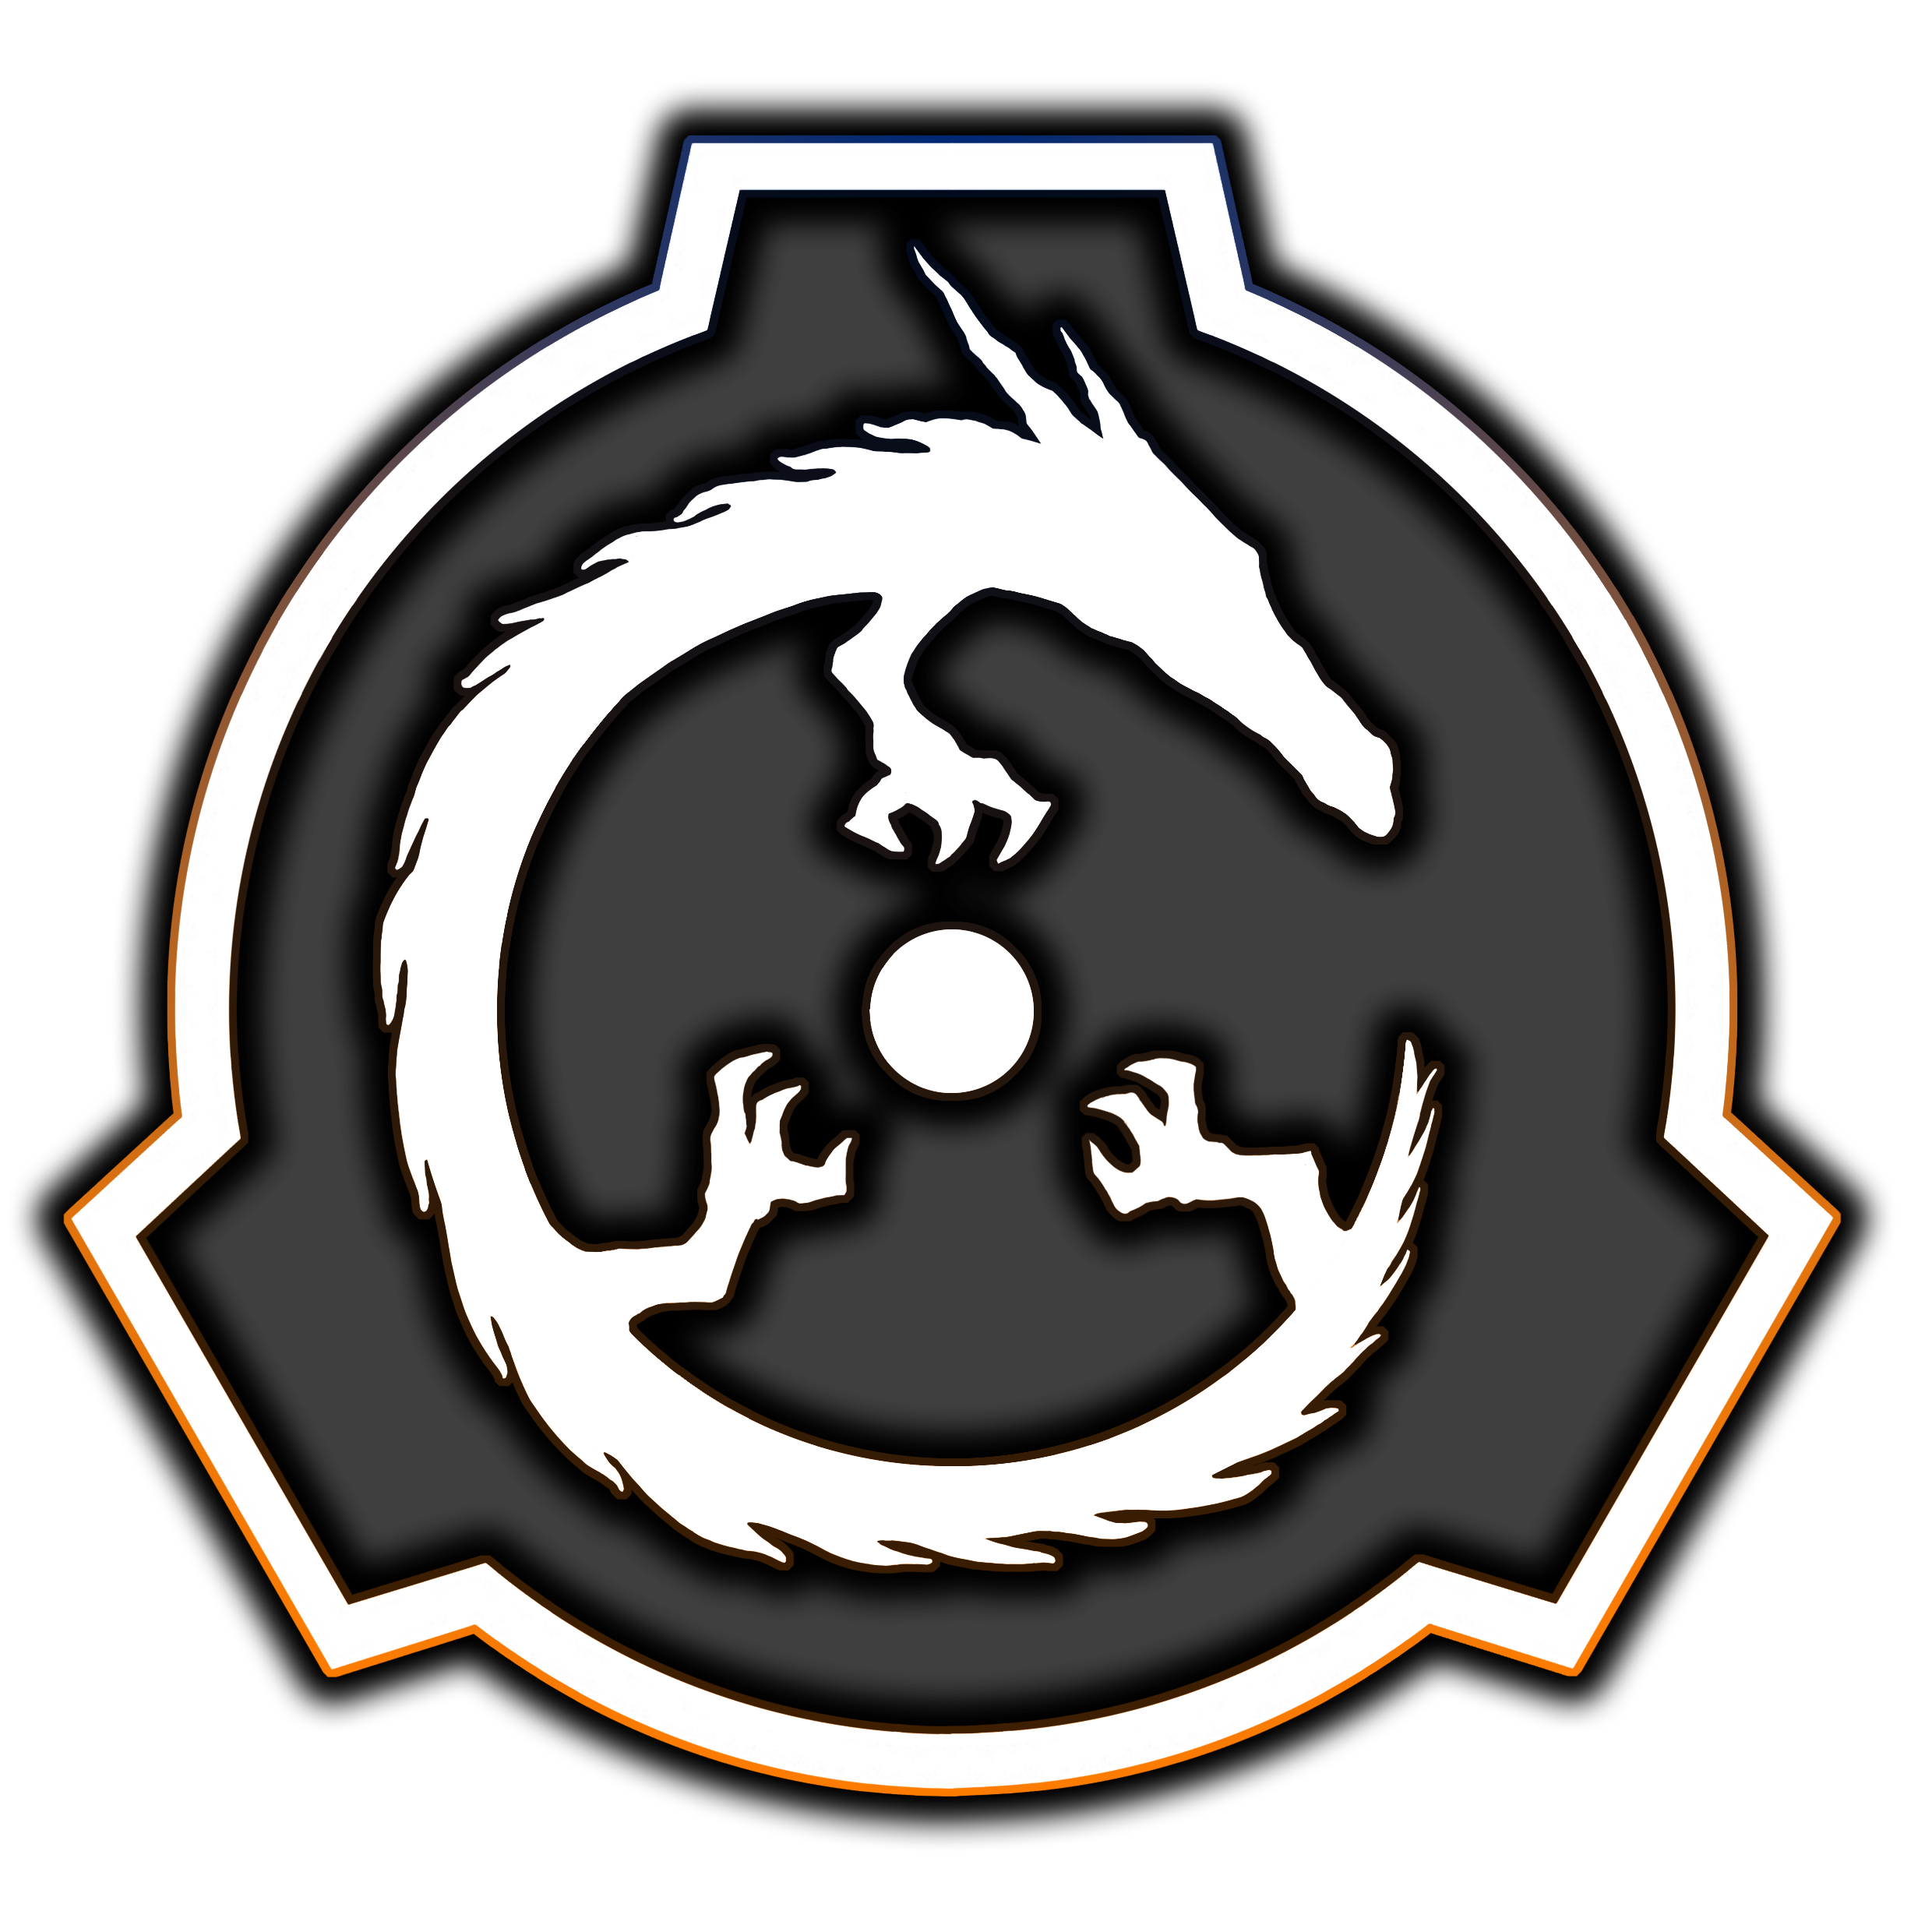 SCP_LOGO_CN_WithBorder.png